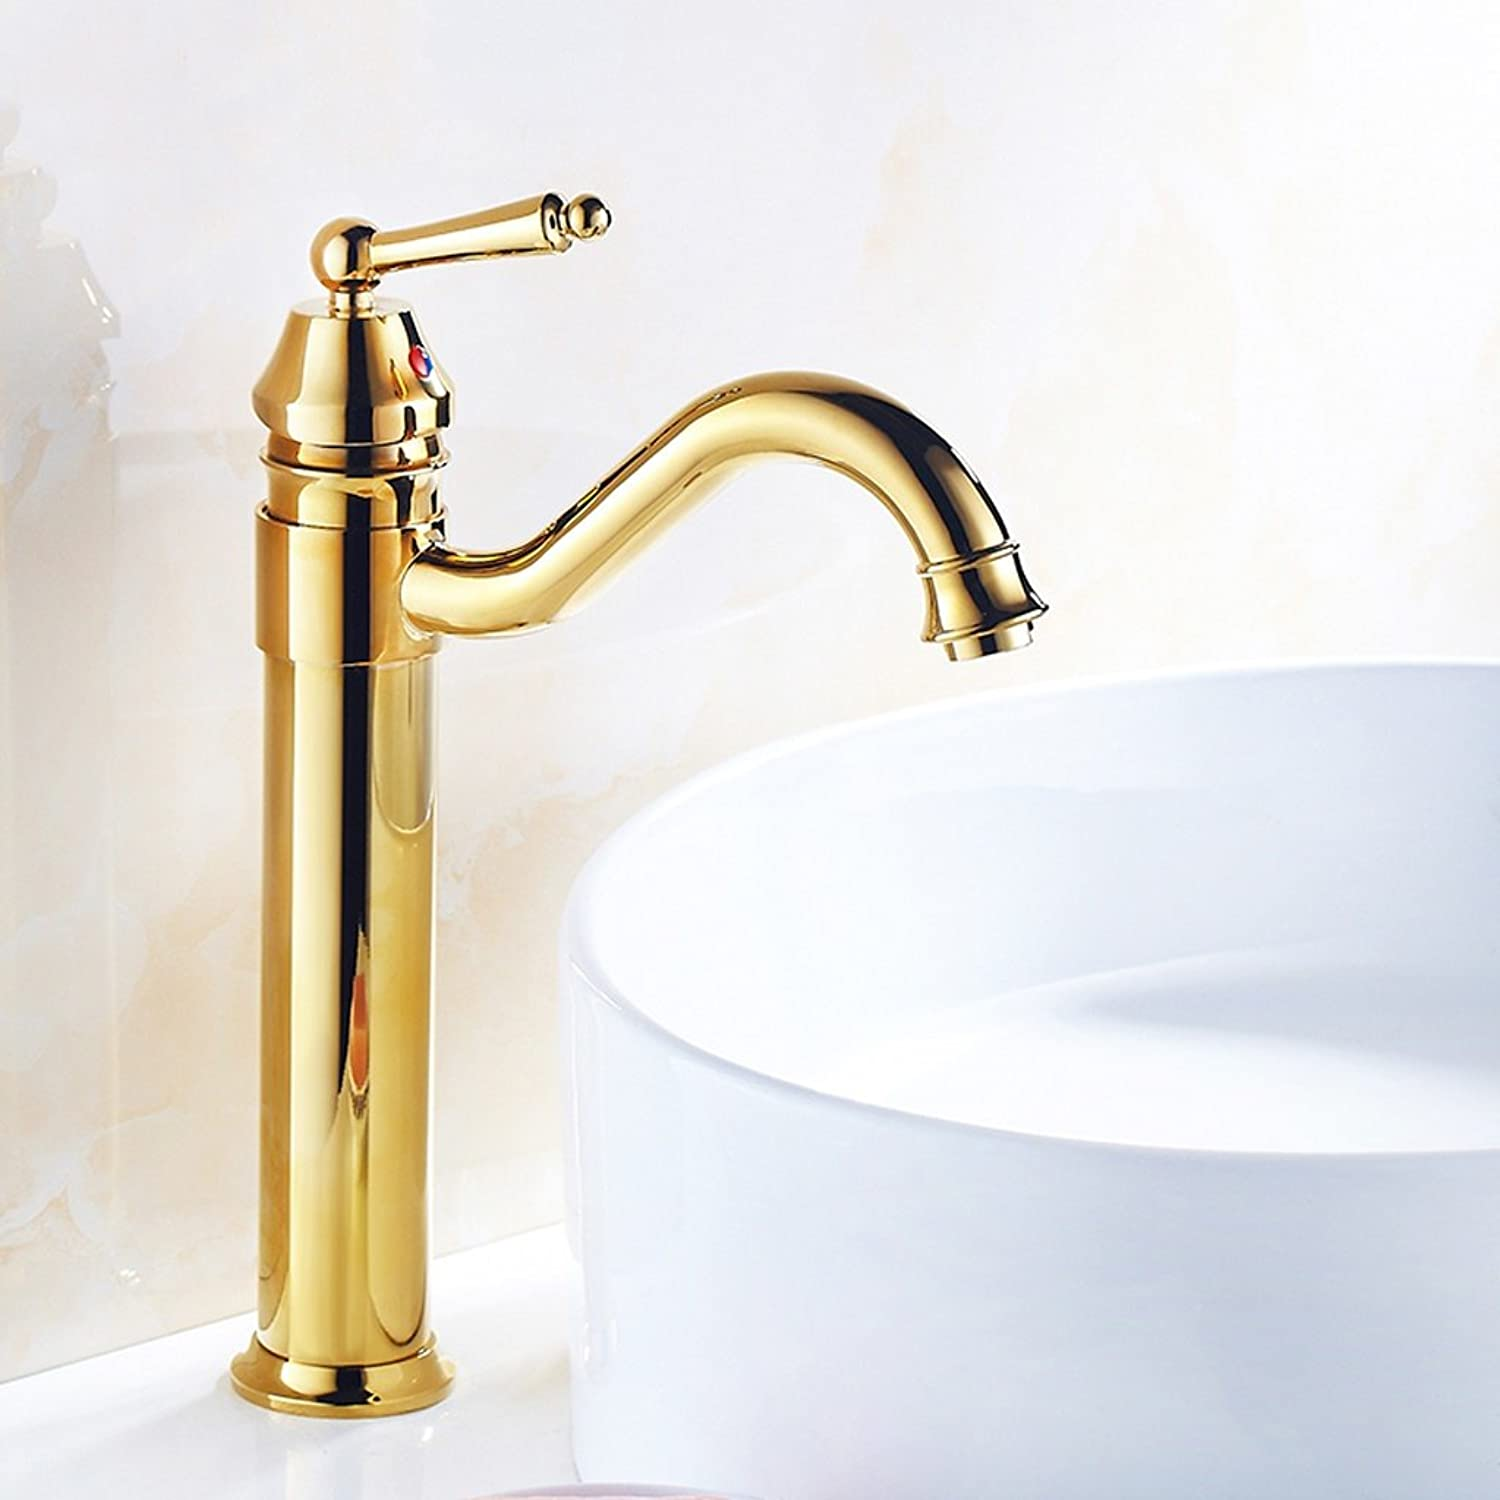 LJ All Bronze gold-plated Washbasin Increase High Single Hole Faucet